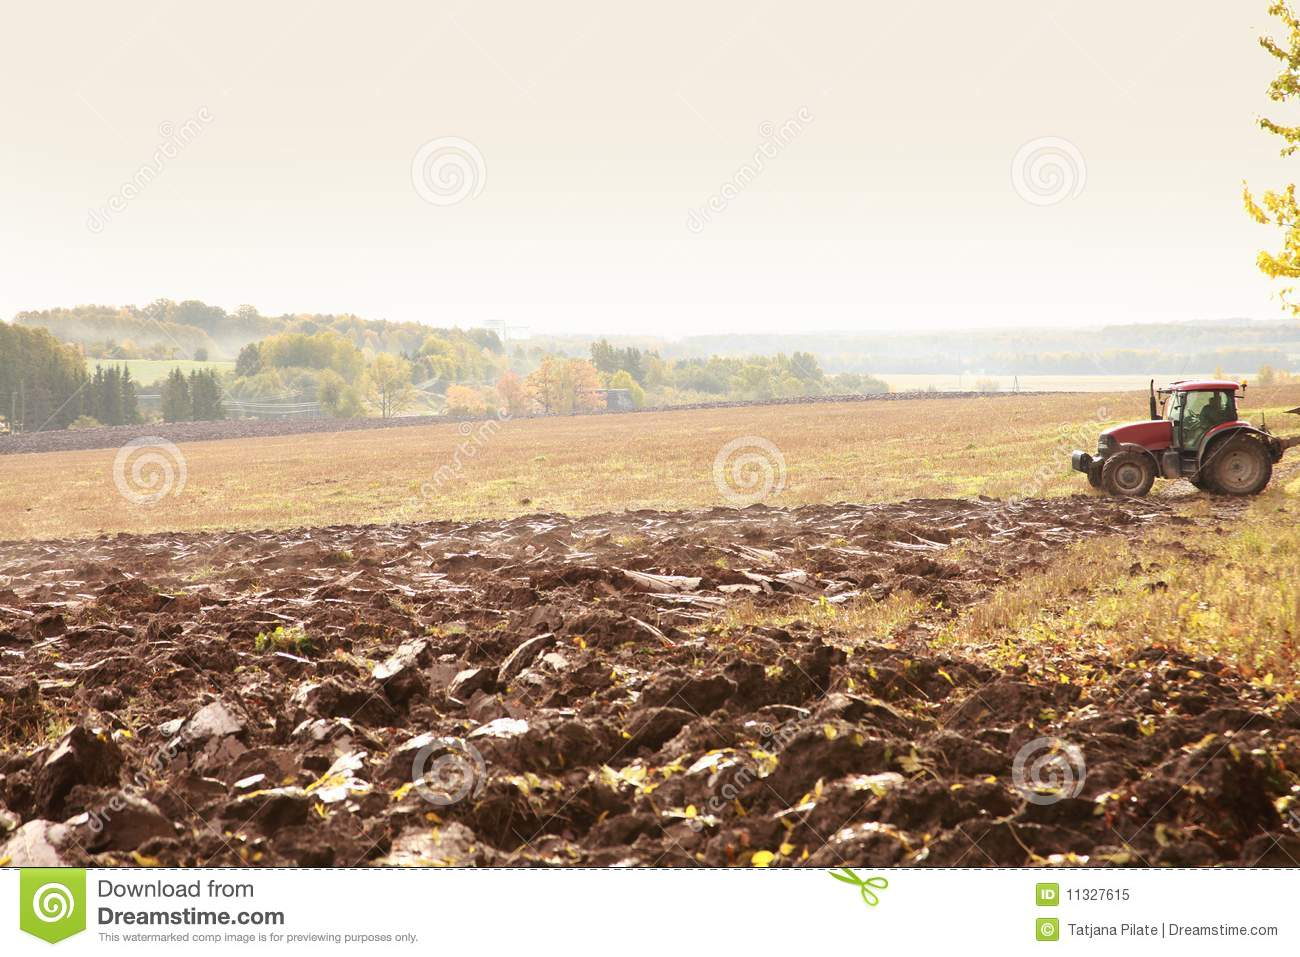 tractor royalty free stock photo image 11327615 Farmer Plowing Clip Art Contour Plowing